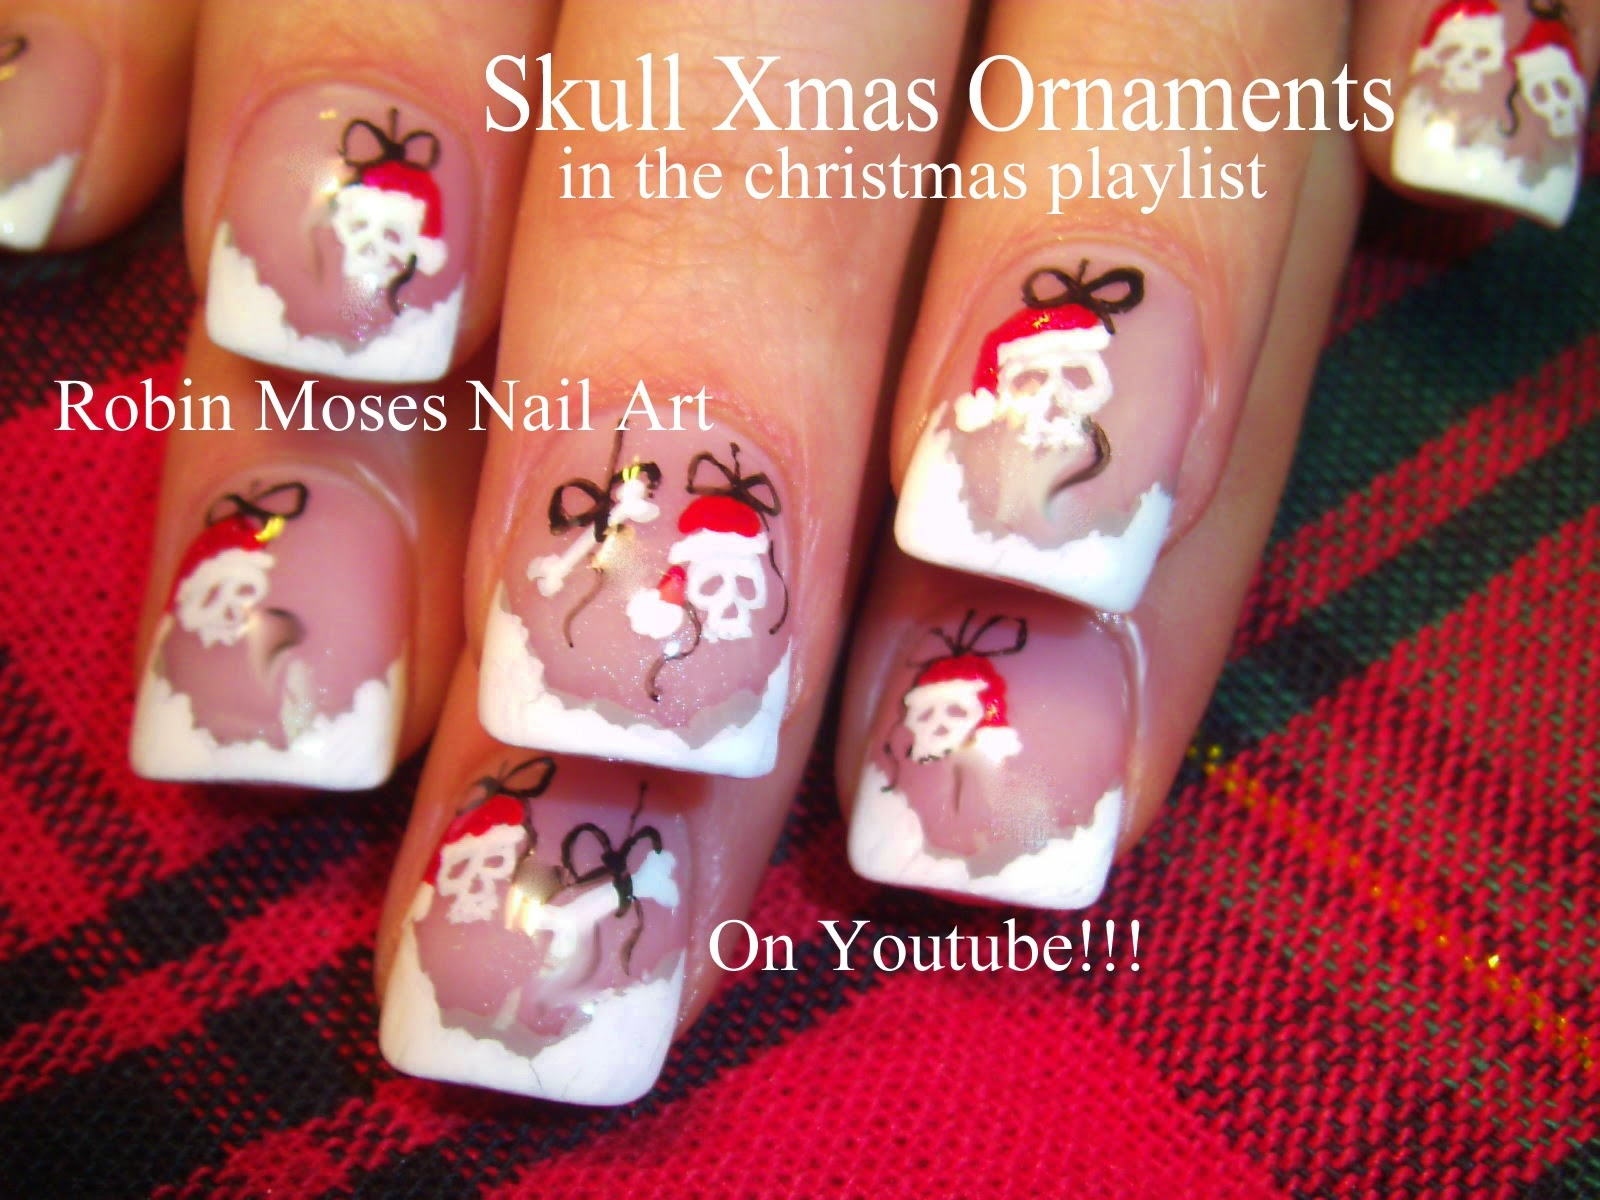 Robin moses nail art poinsettia nails christmas nails xmas nail art tutorials christmas nail art diy xmas nails easy holiday nail art for beginners and up prinsesfo Images